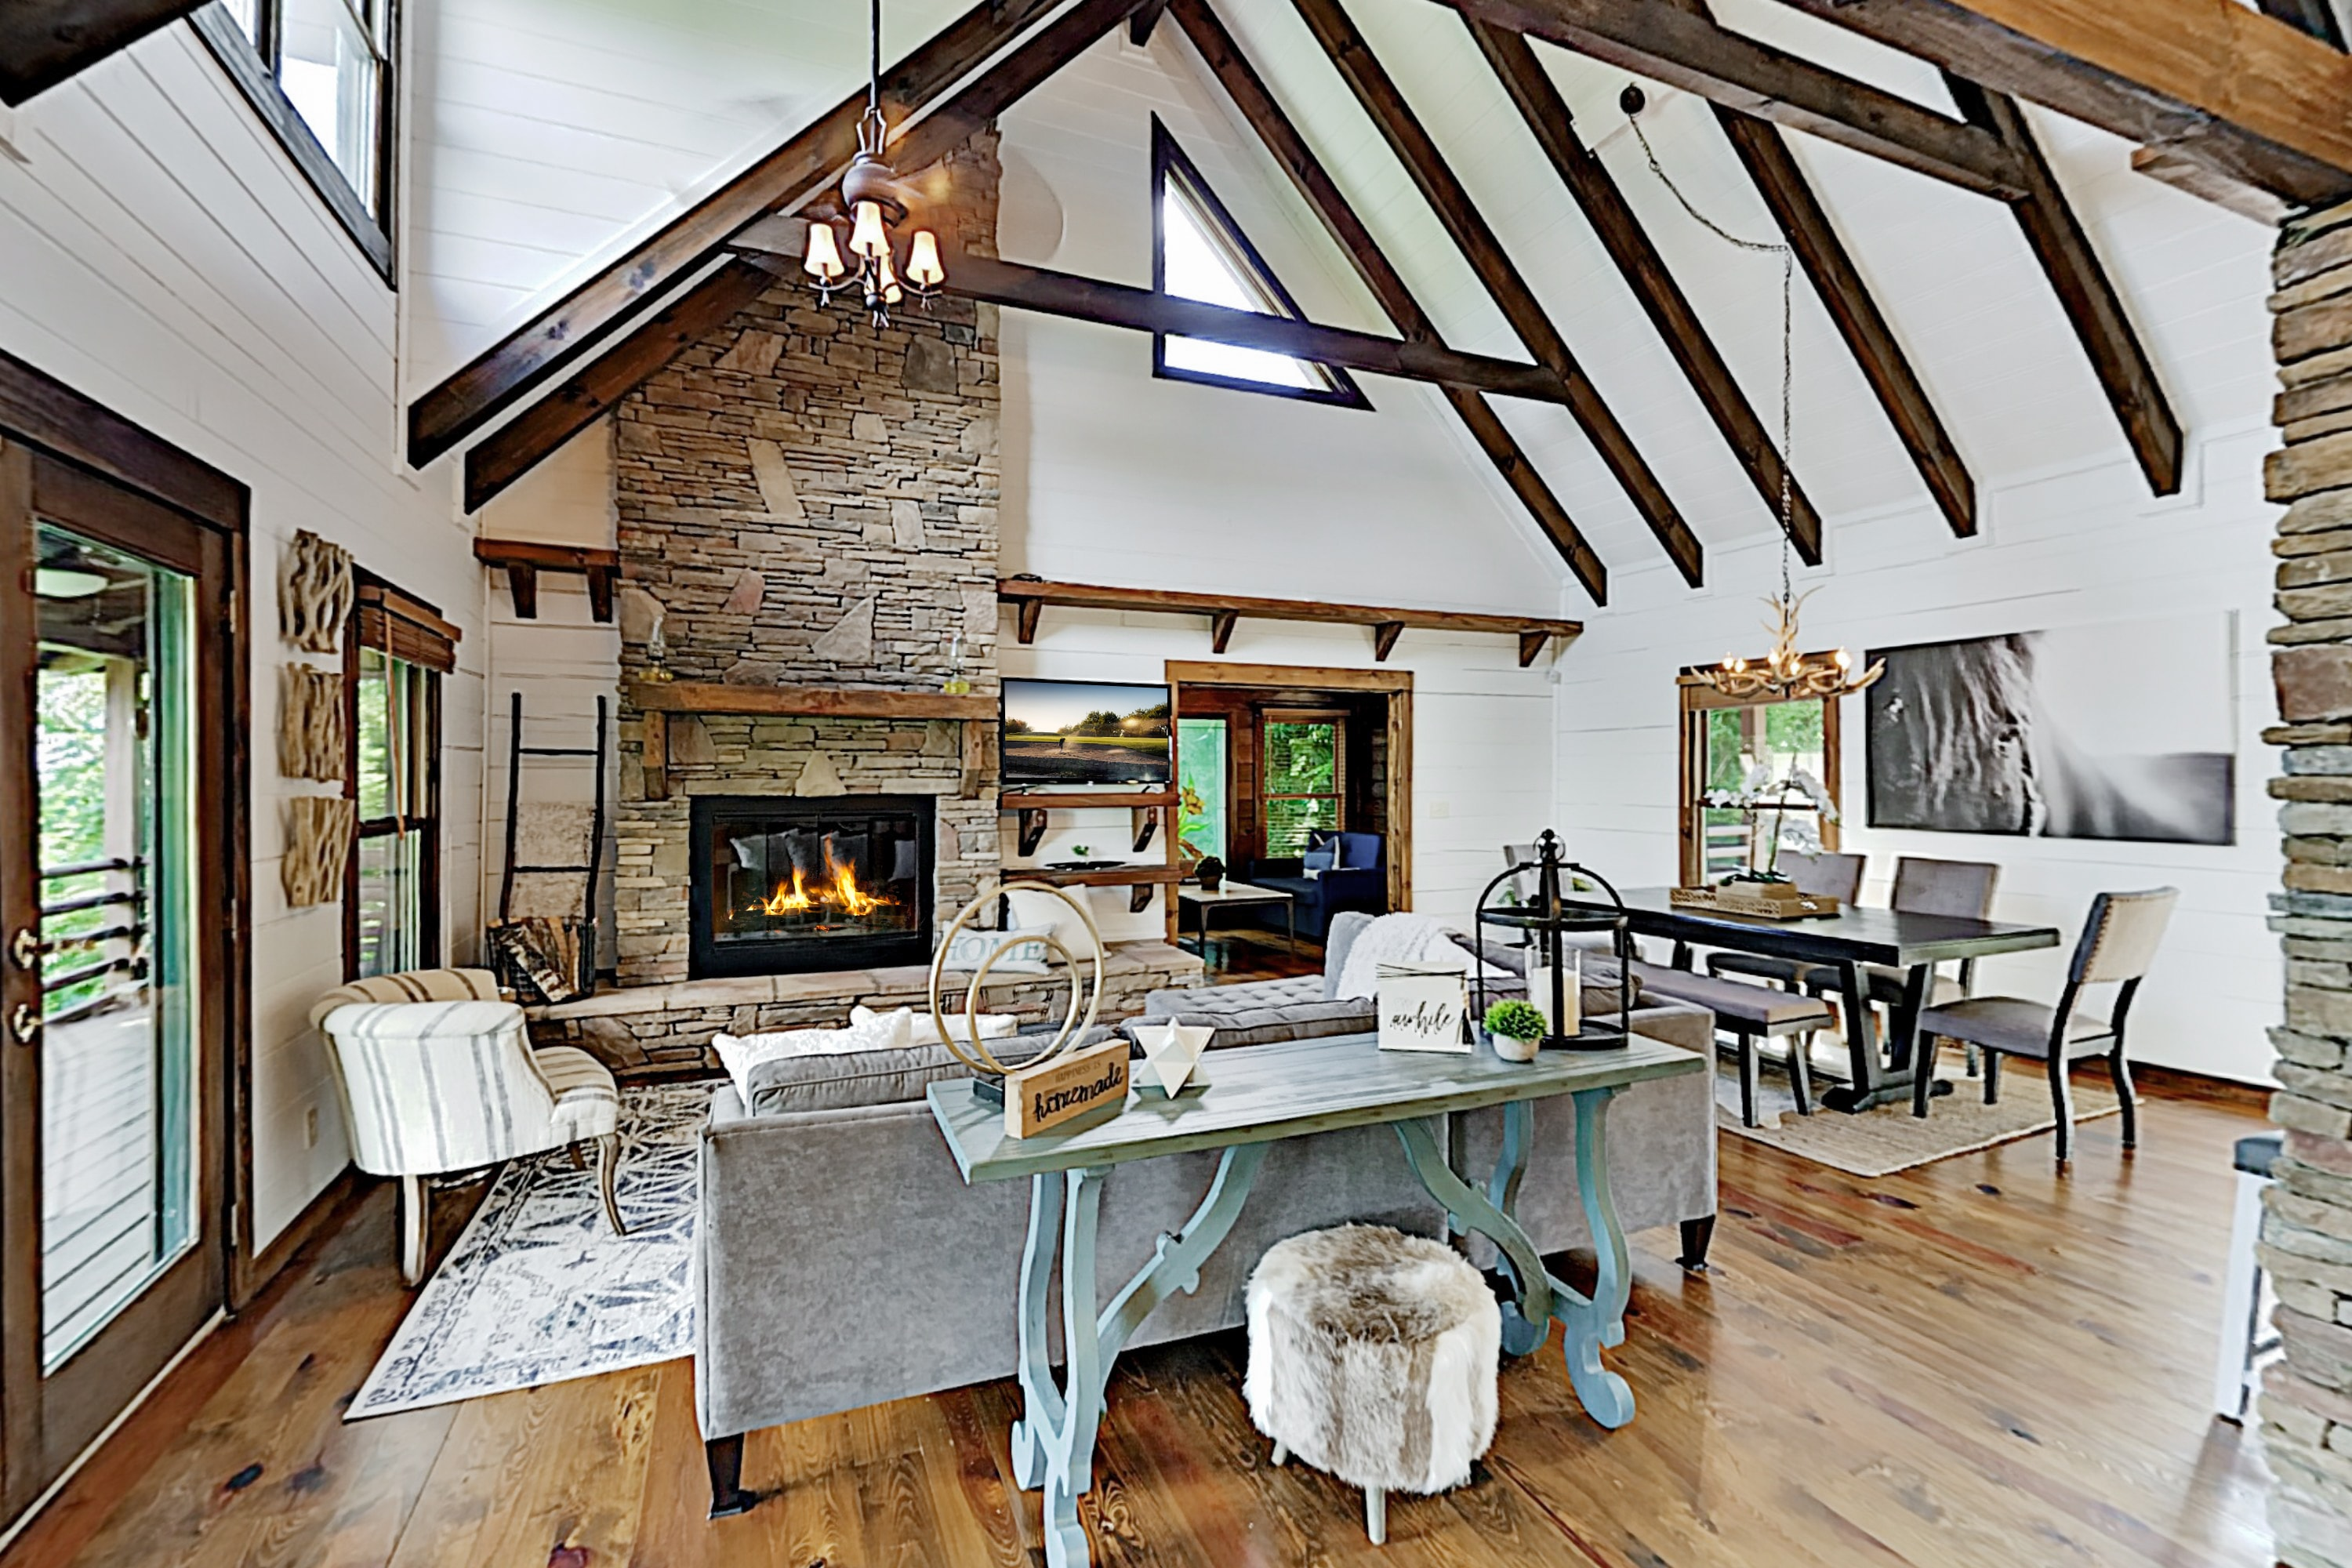 Stylish Mountain Retreat: 2 Suites, Near Asheville